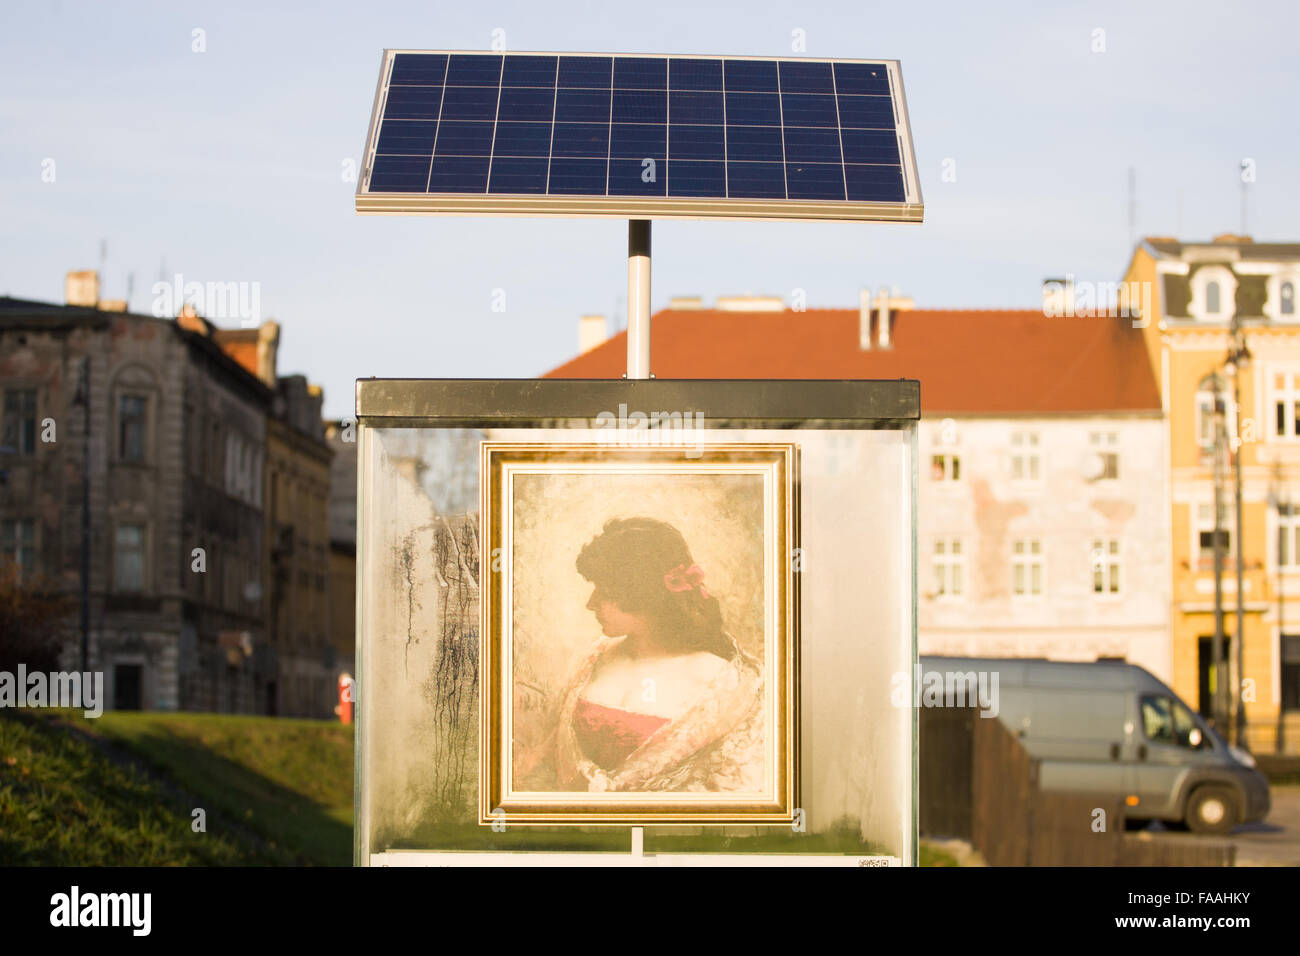 A solar panel is seen above an art display in Bydgoszcz, Poland ...